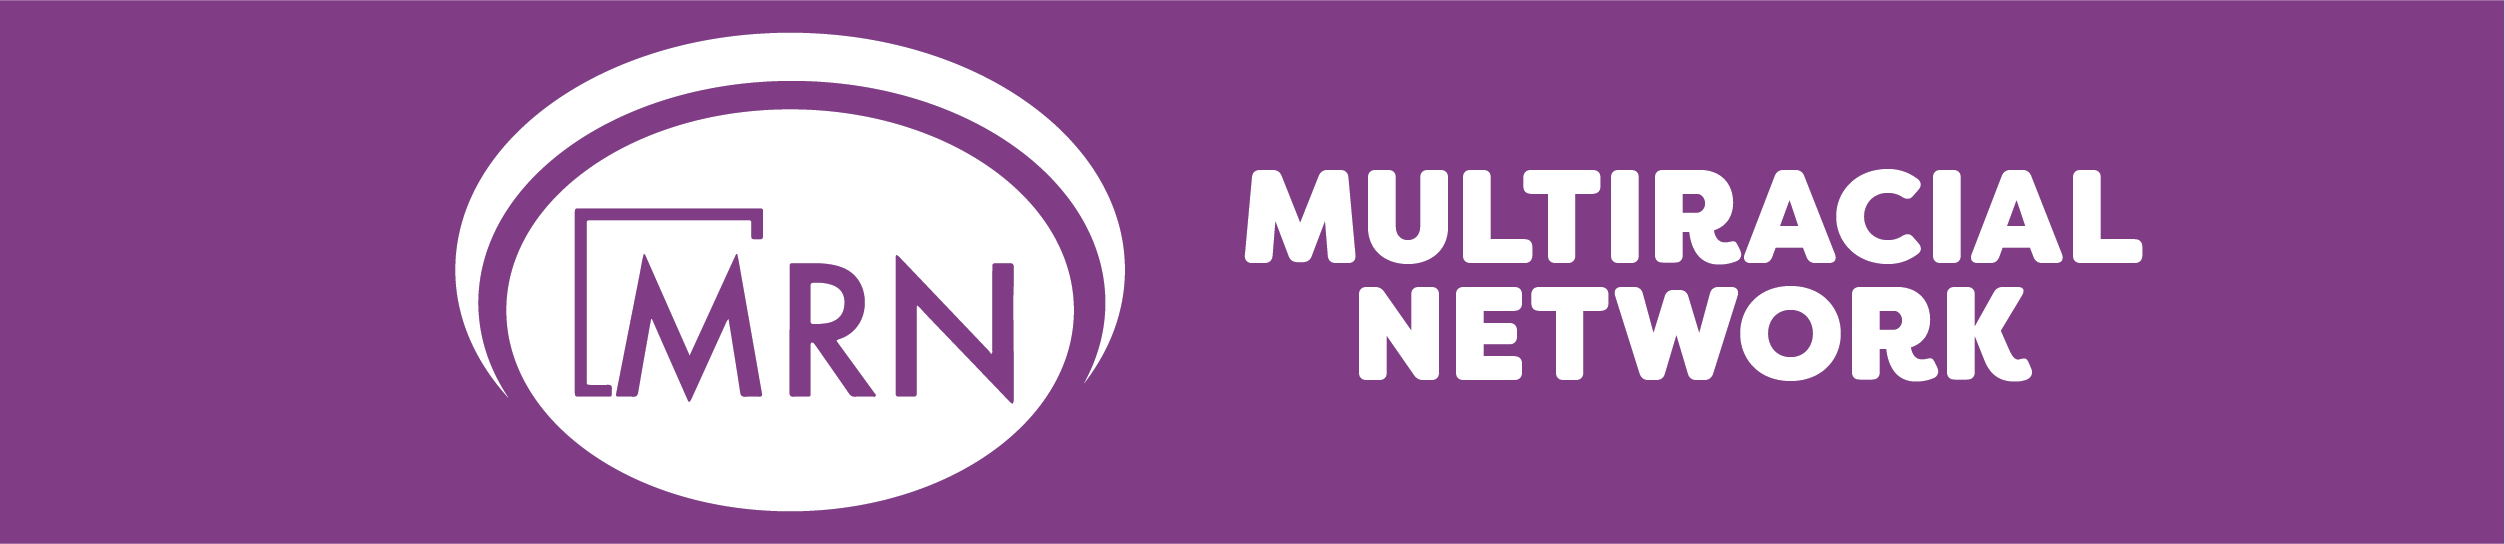 MULTIRACIAL NETWORK and logo